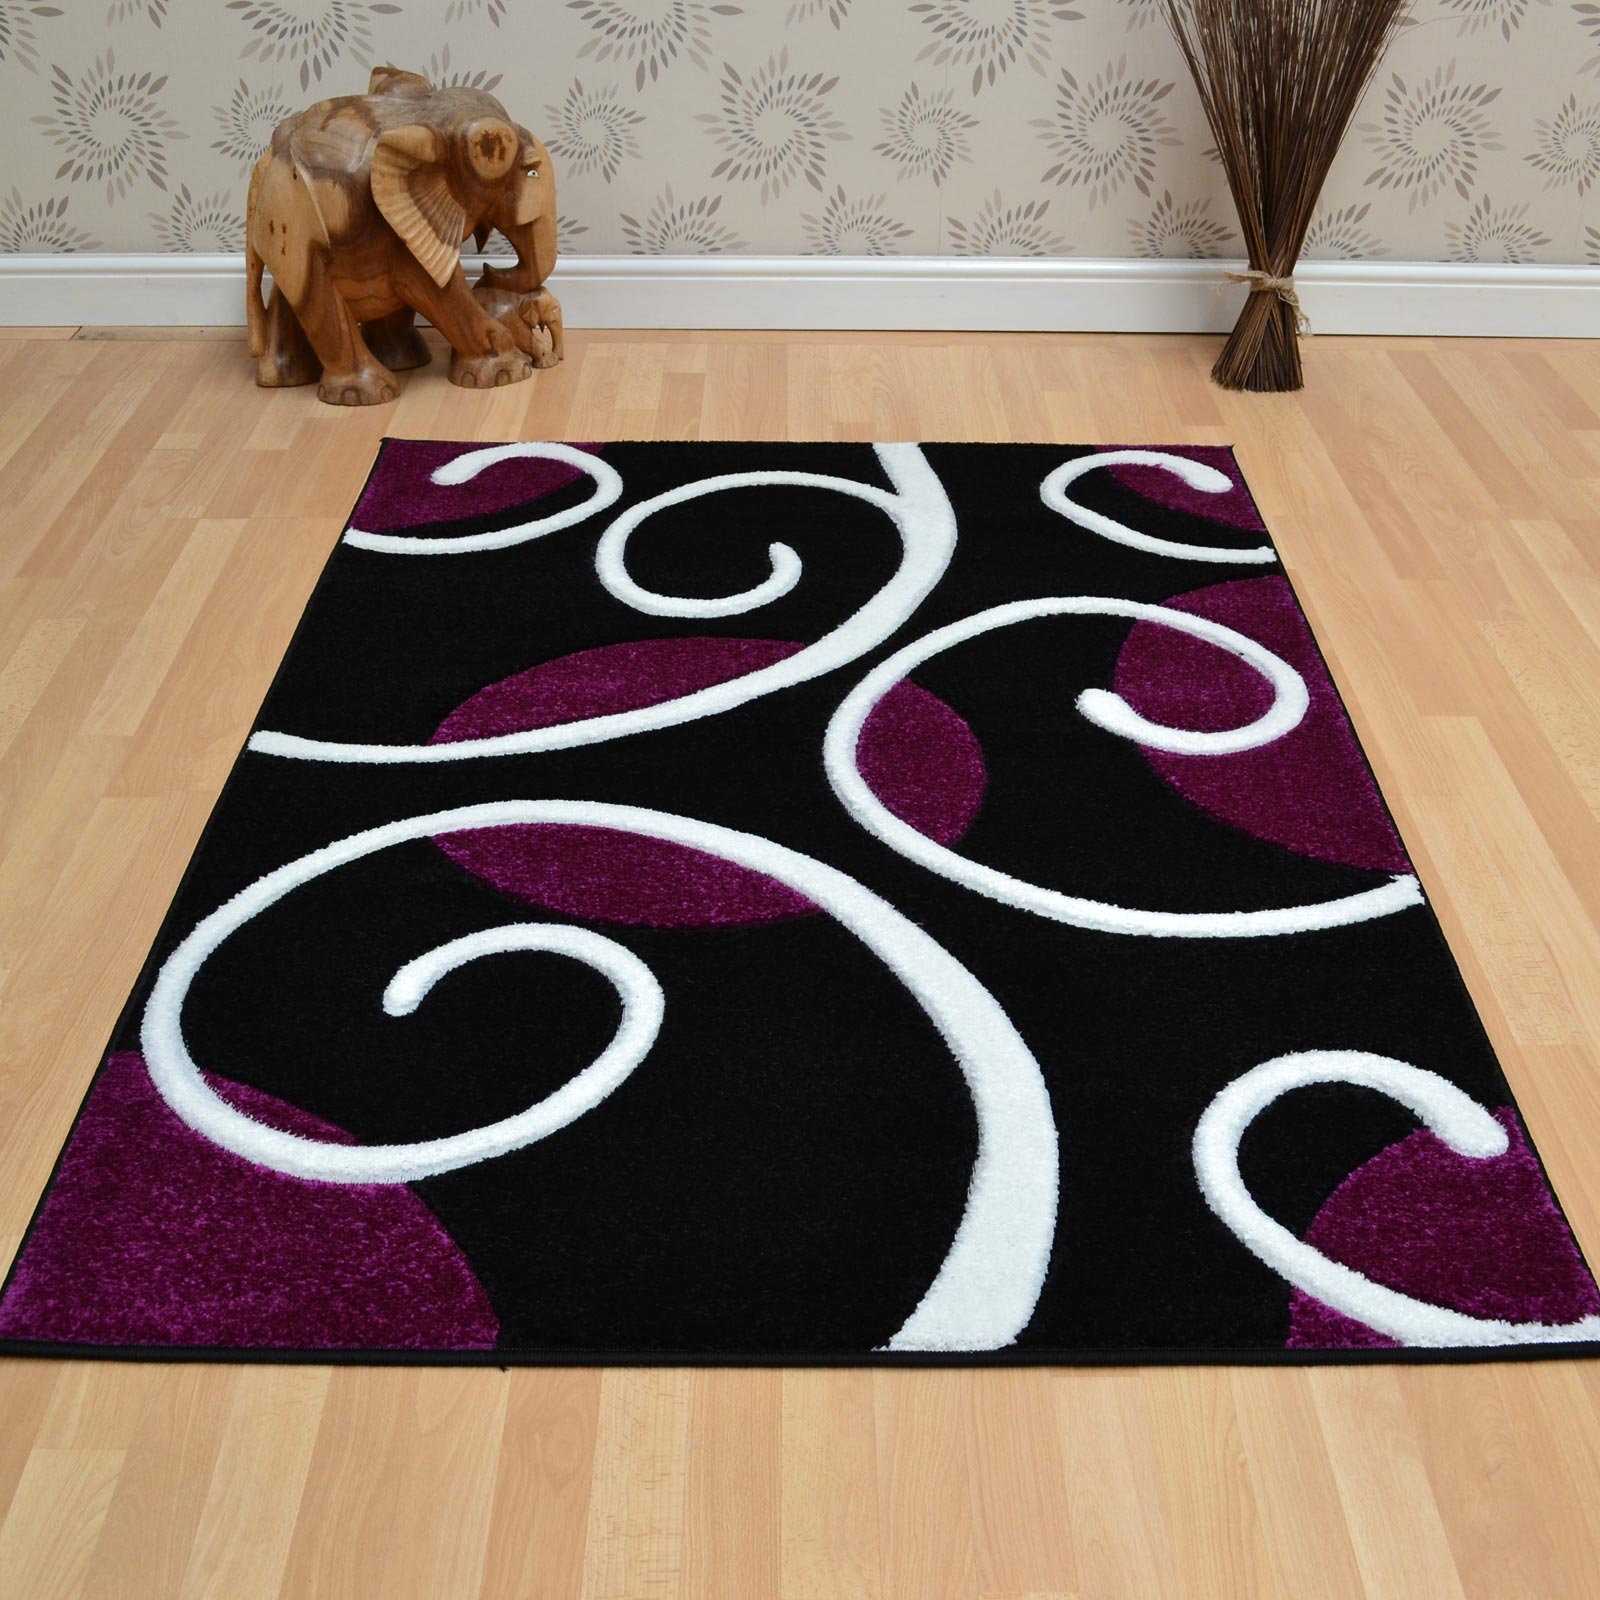 Couture Rugs COU04 Purple Black Free UK Delivery The